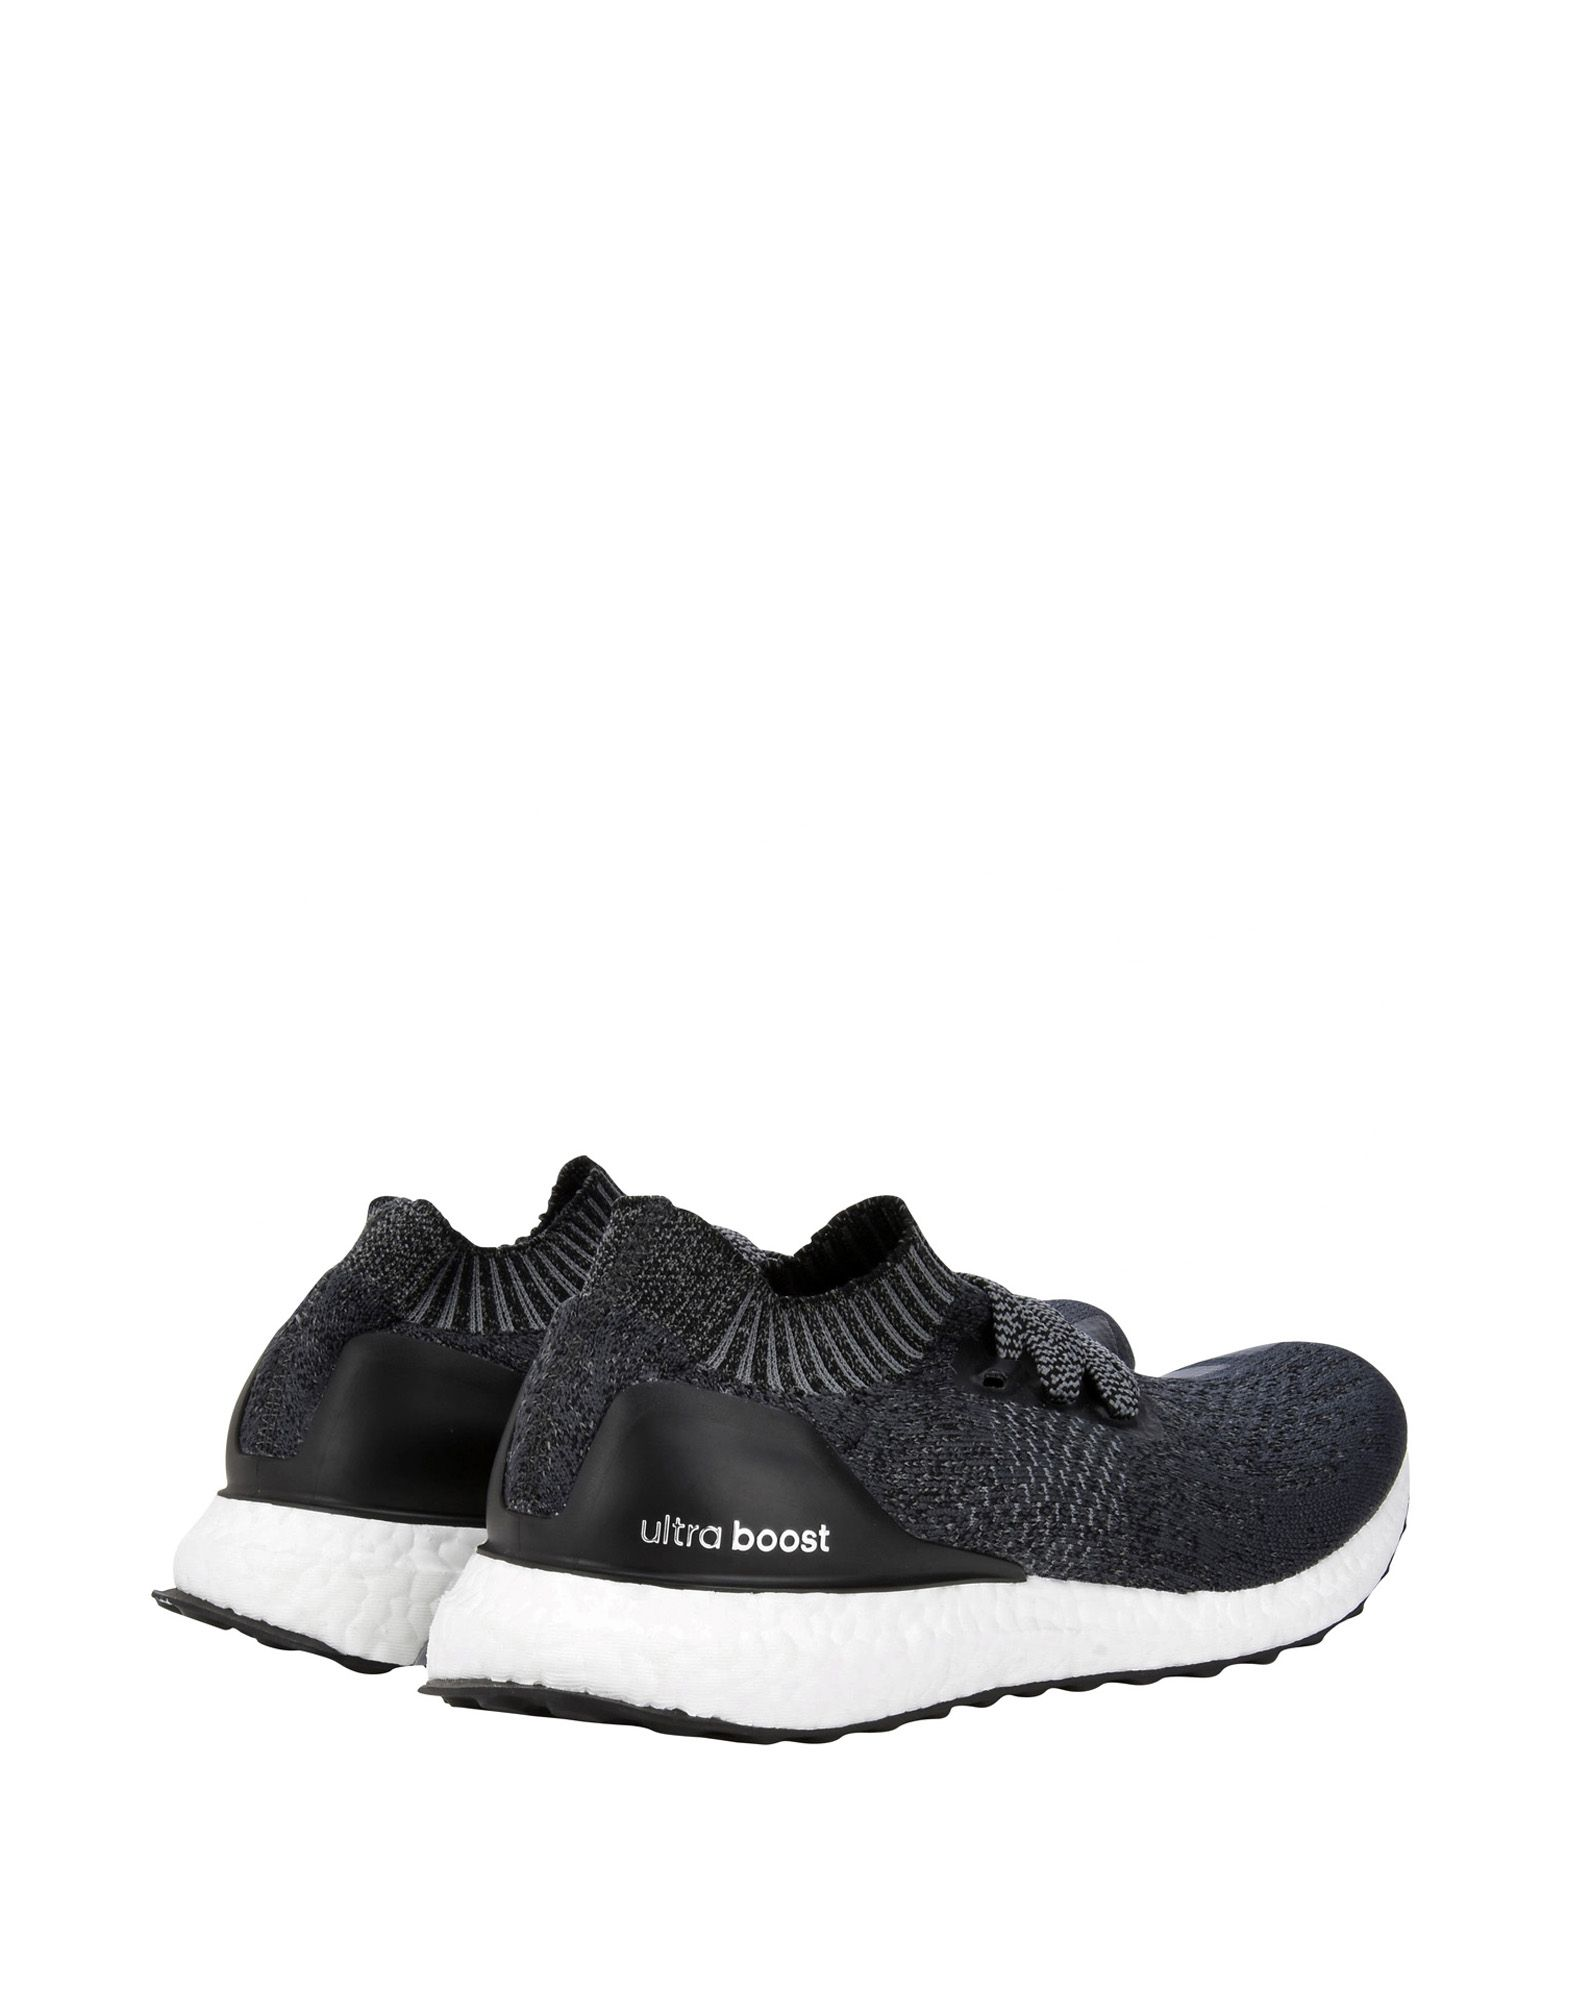 ... Sneakers Adidas Ultraboost Uncaged W - Femme - Sneakers Adidas sur ...